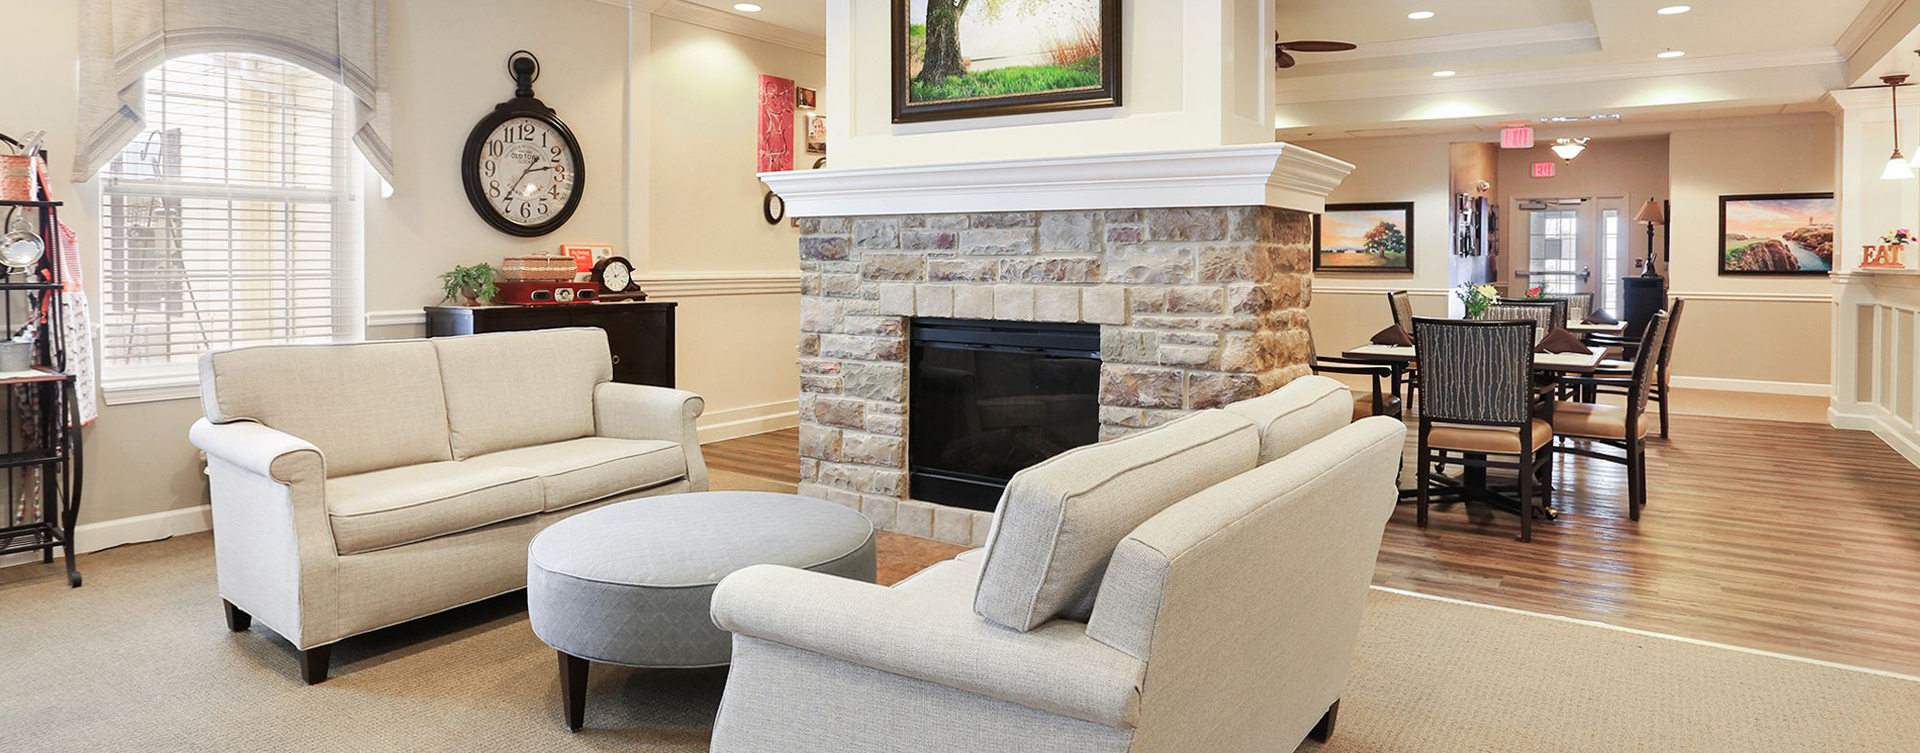 Mary B's living room provides a smaller, more intimate setting to encourage interaction at Bickford of Champaign